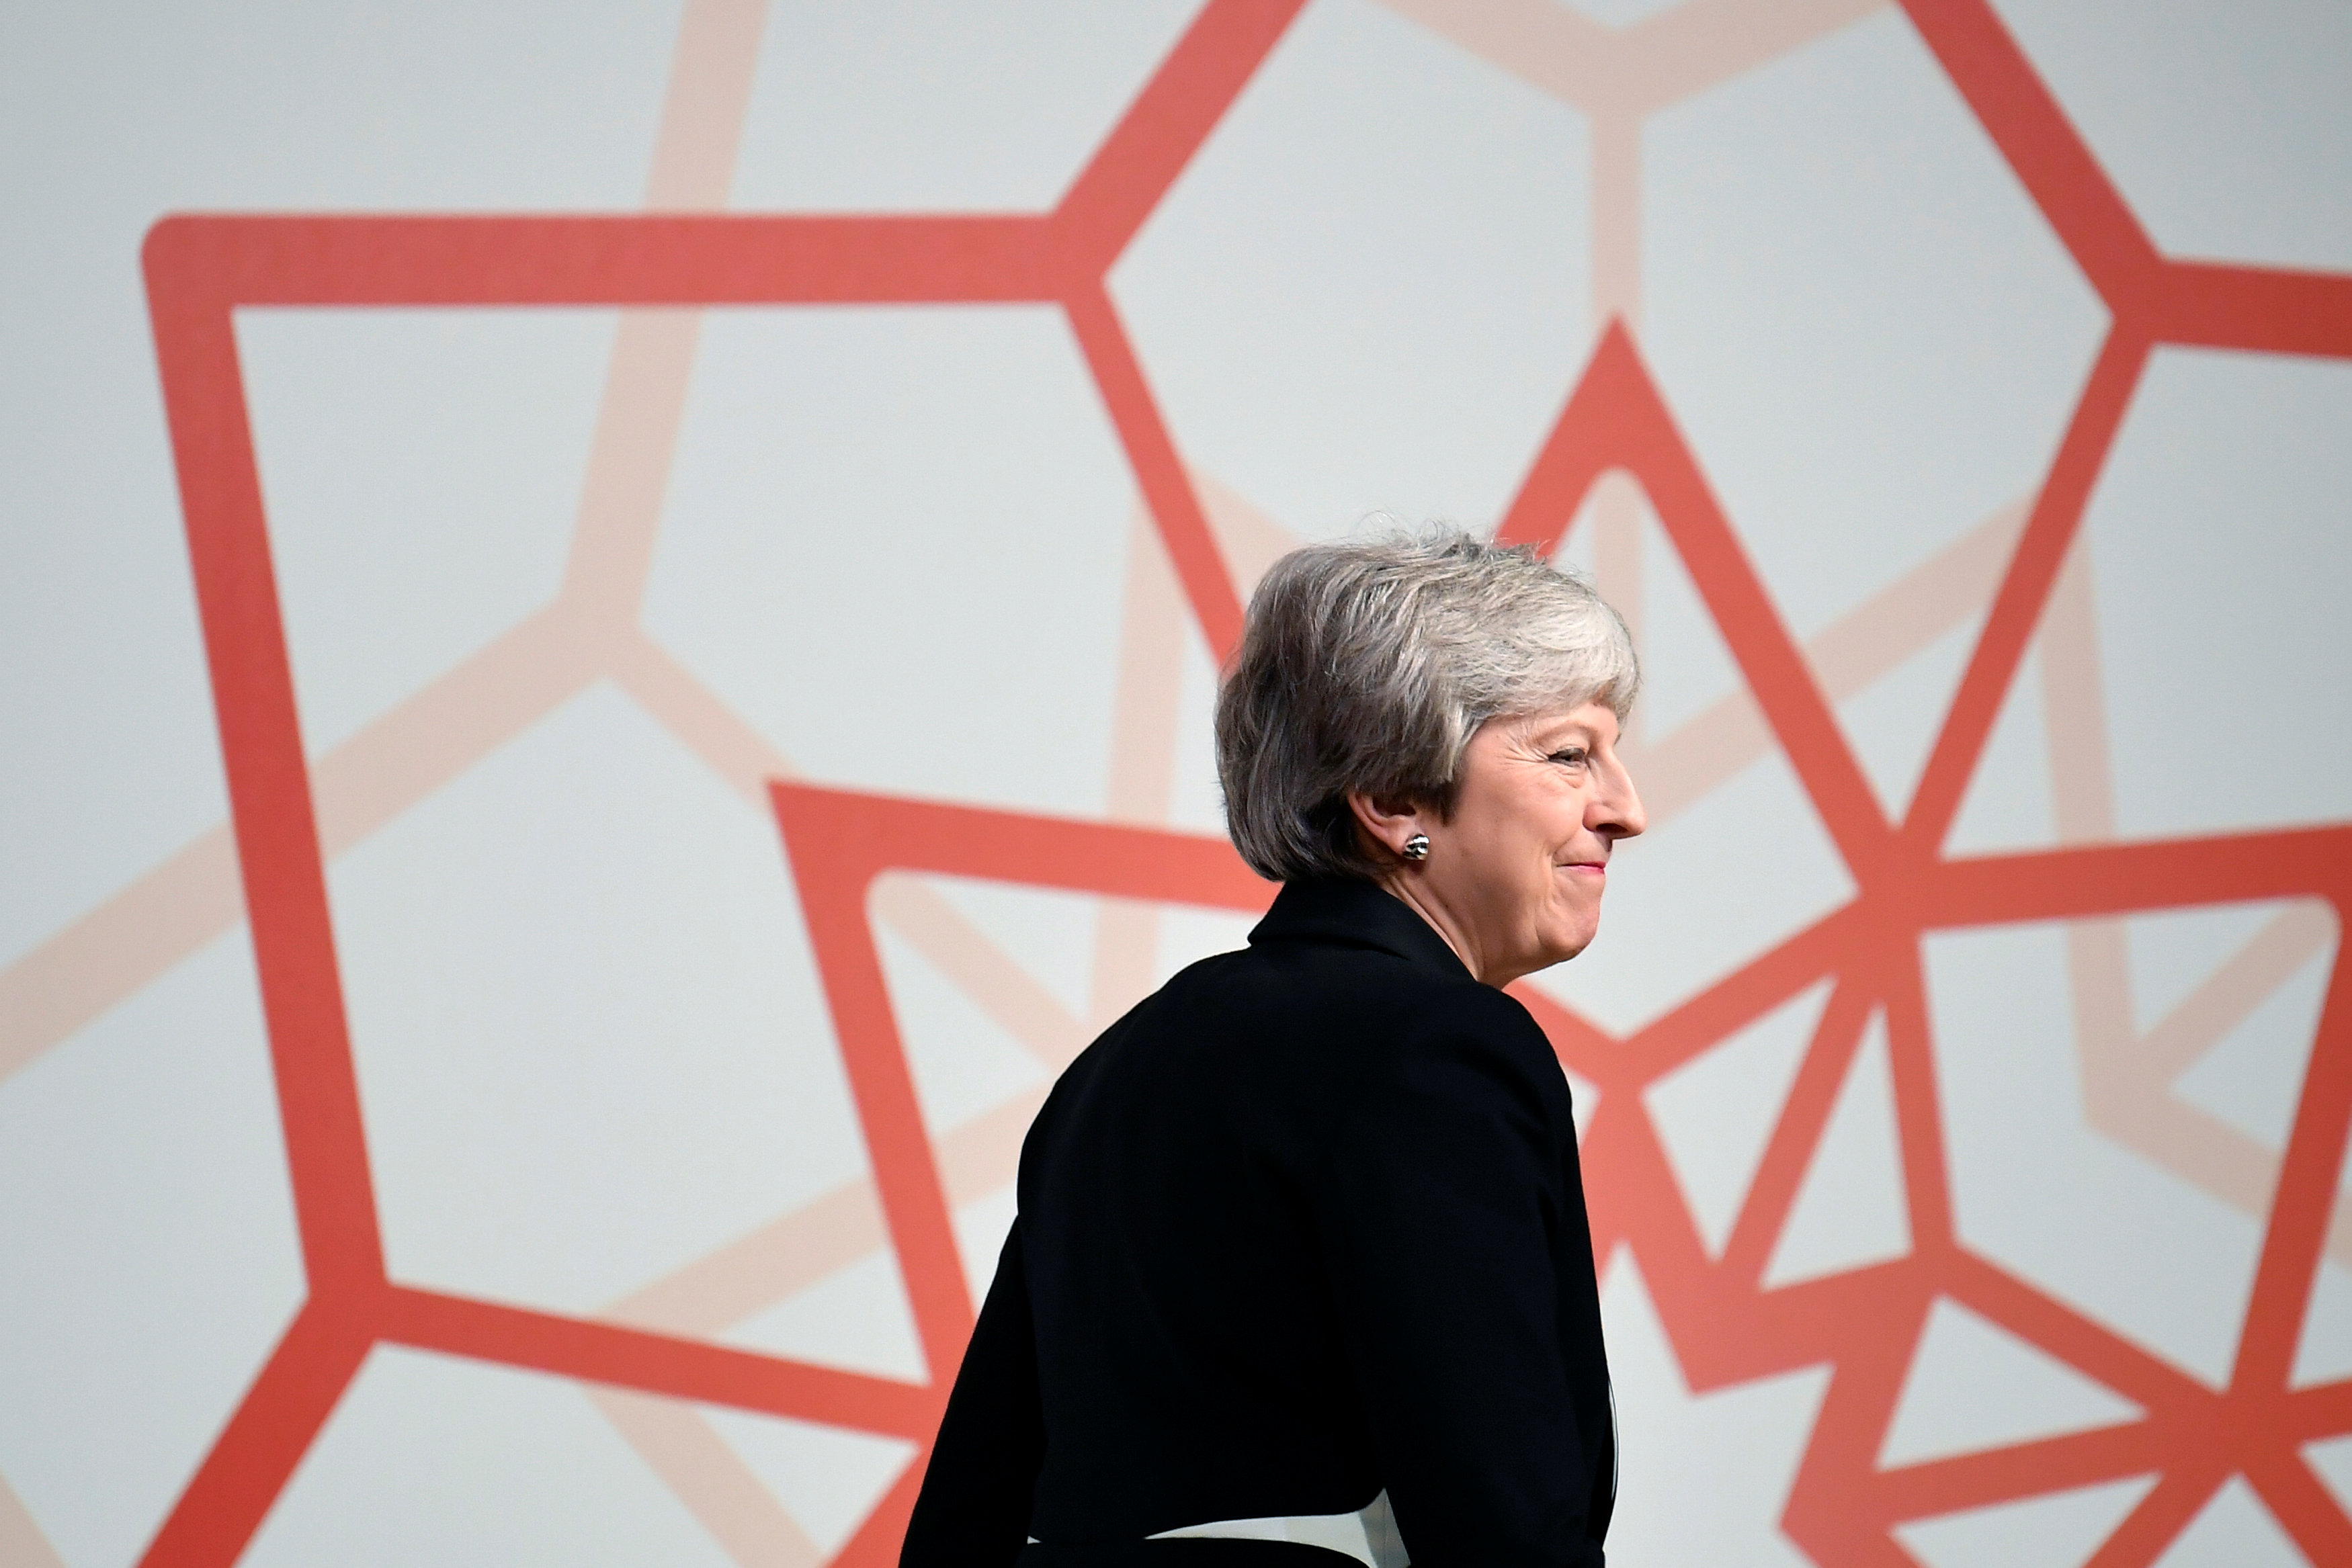 LONDON, ENGLAND - FEBRUARY 28: Britain's Prime Minister Theresa May speaks at the Jordan Growth and Opportunity Conference on February 28, 2019 in London, England. (Photo by Toby Melville WPA Pool/Getty Images)